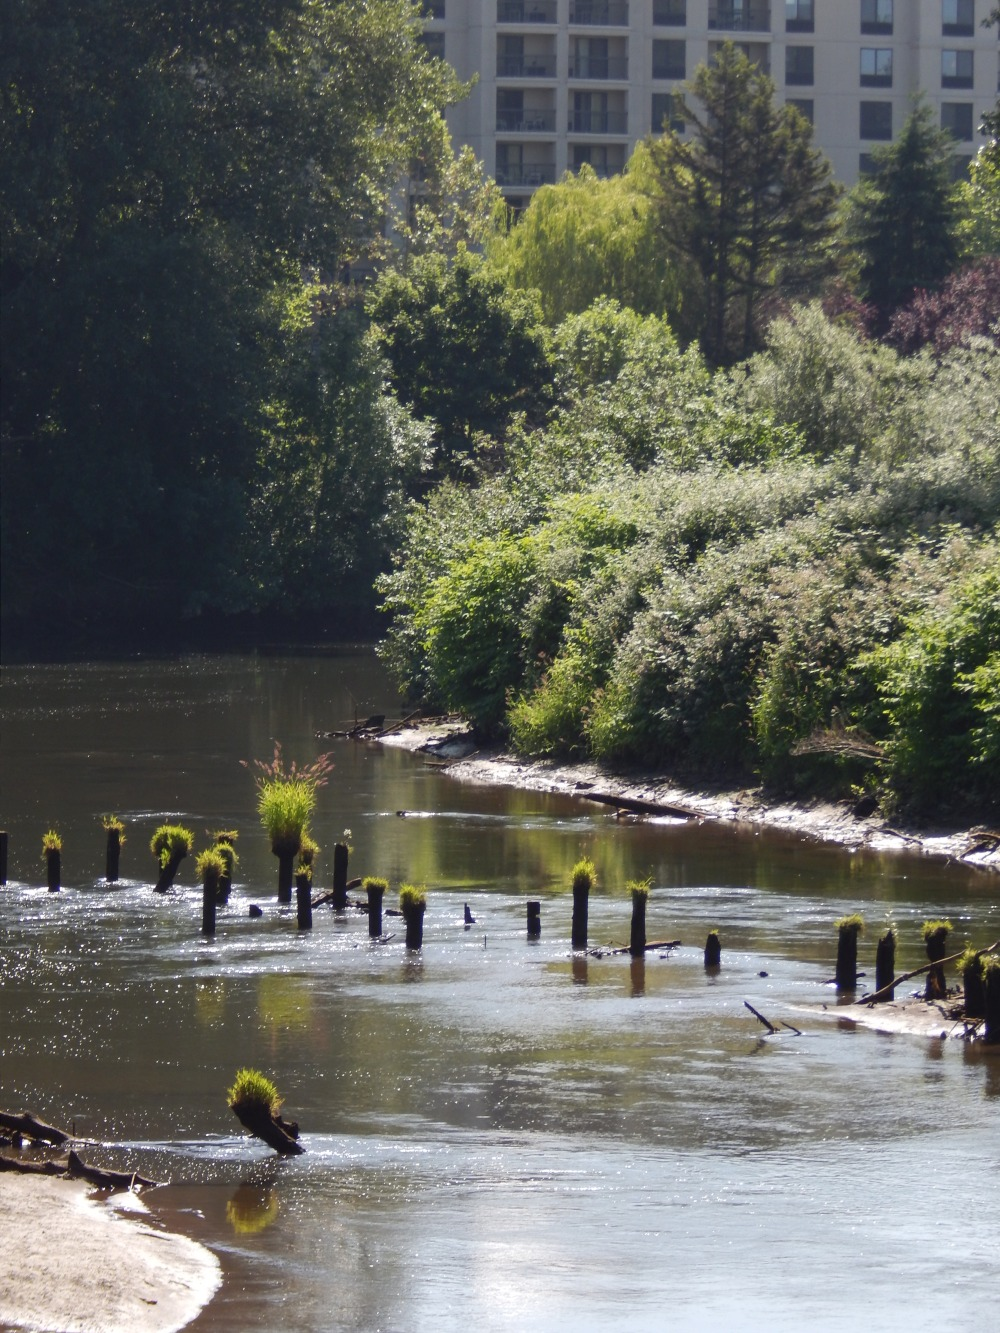 Old Pilings - what did they support?  Old bridge?